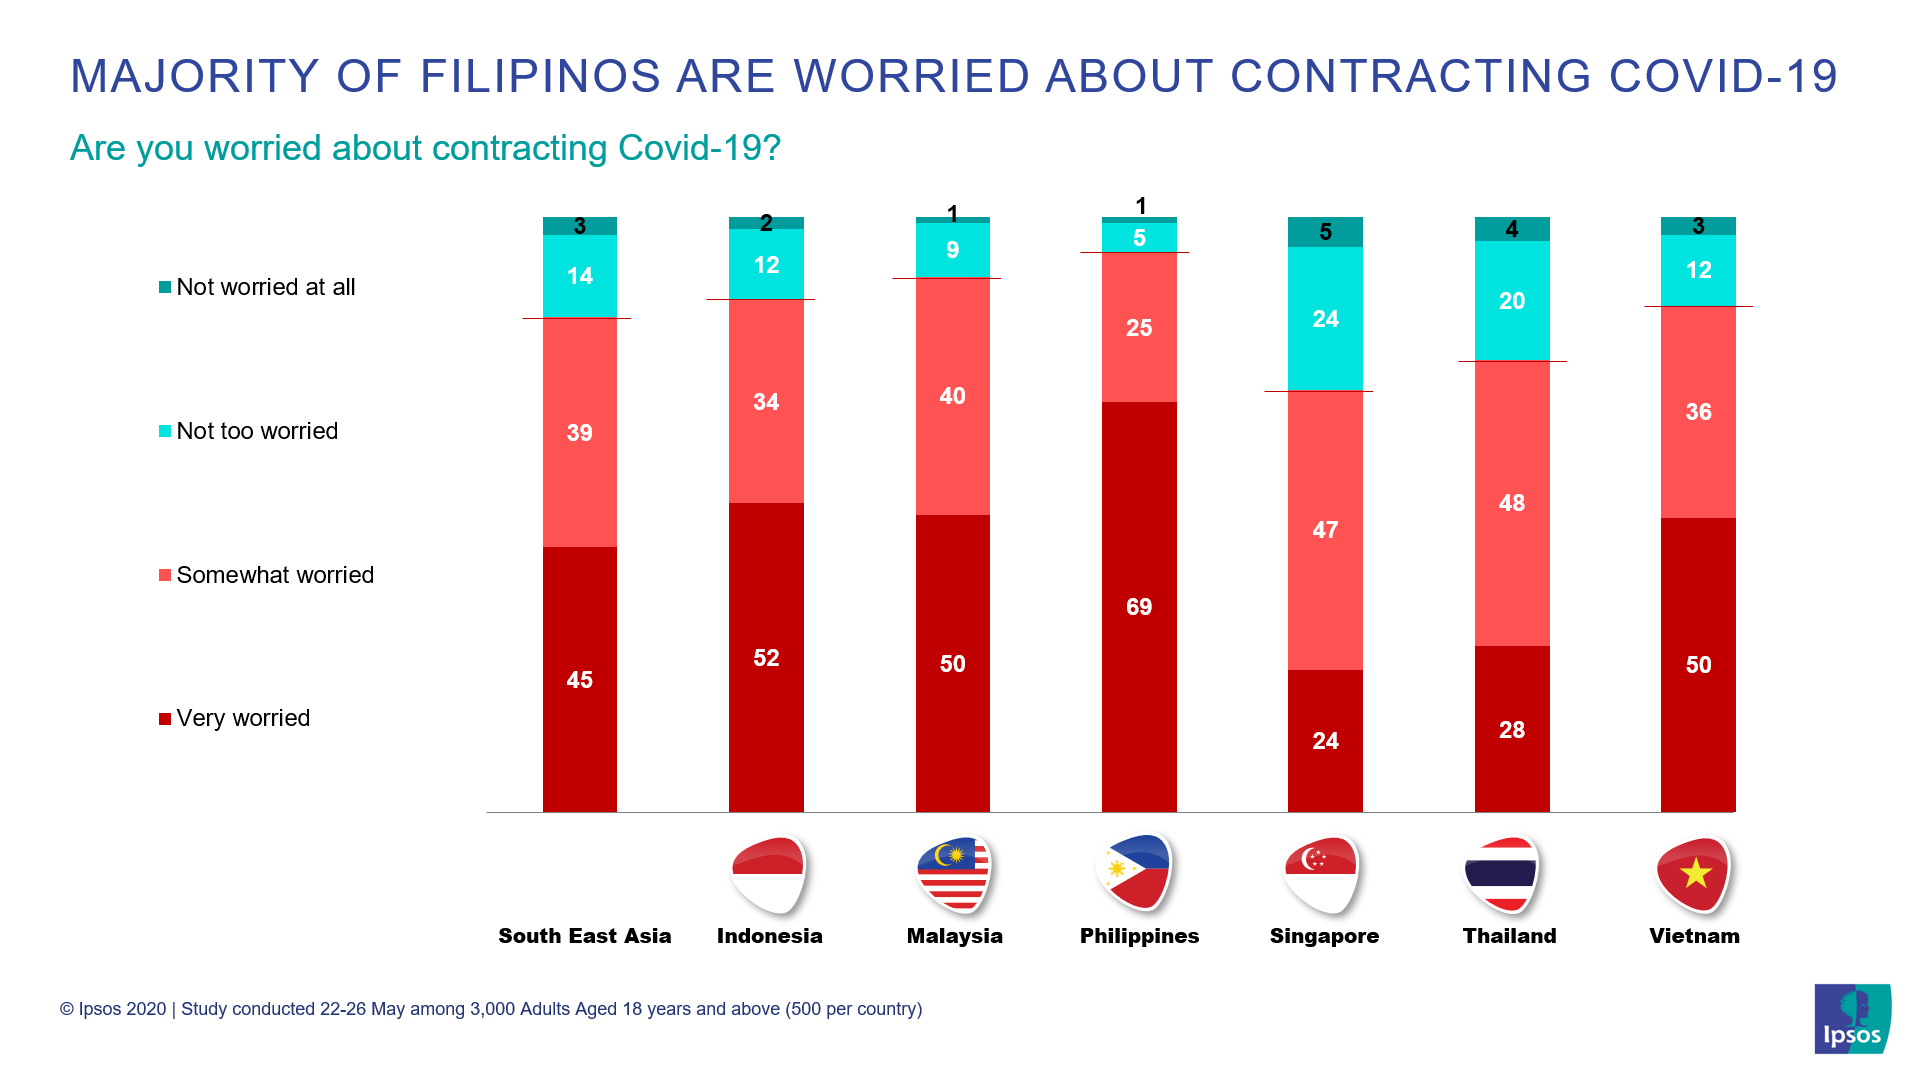 Ipsos PH -  94% of Filipinos are worried about contracting COVID-19